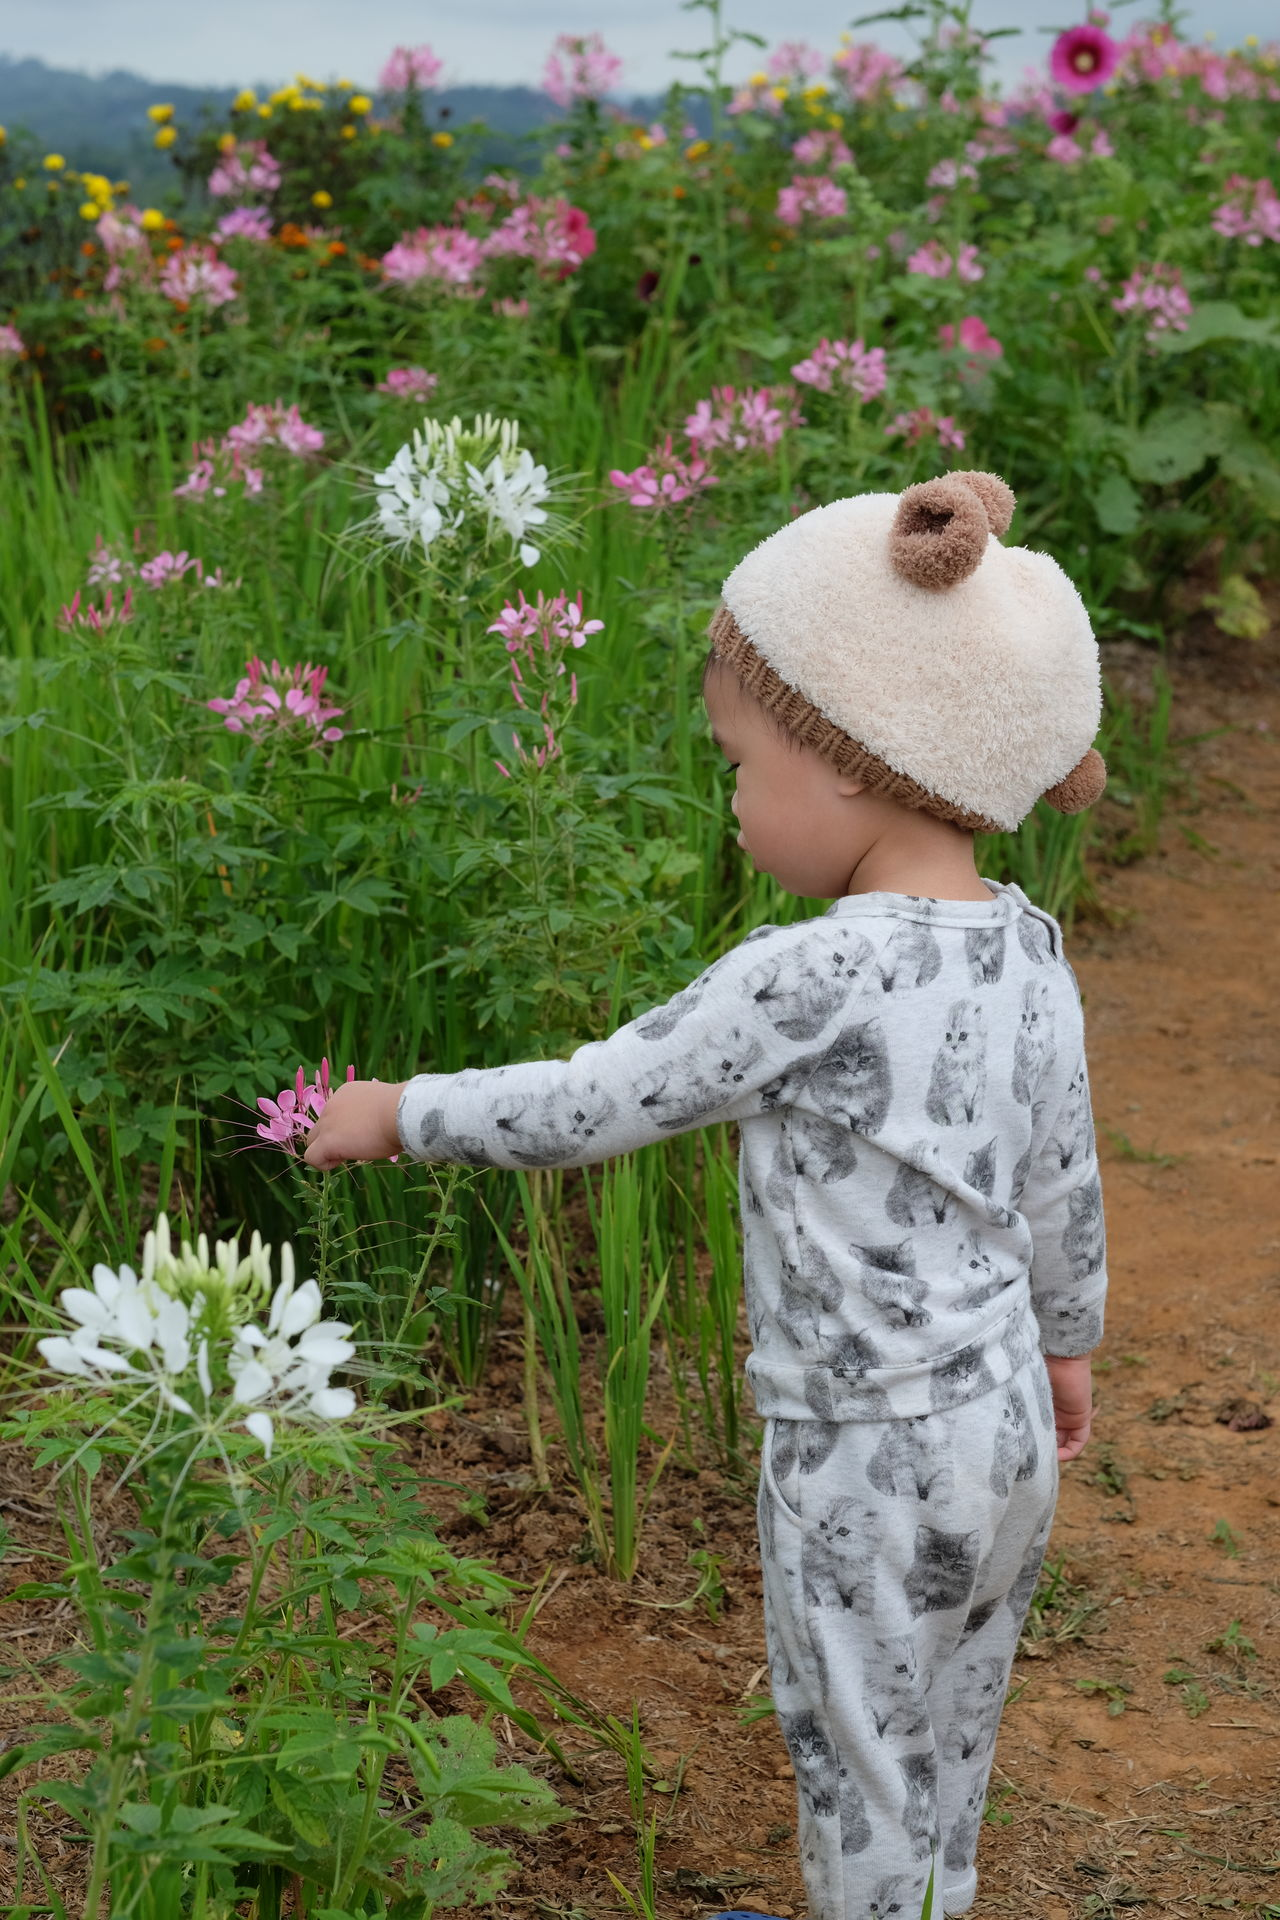 Beauty In Nature Childhood Day Flower Fragility Freshness Growth Hat Nature One Person Outdoors People Plant Real People Sun Hat